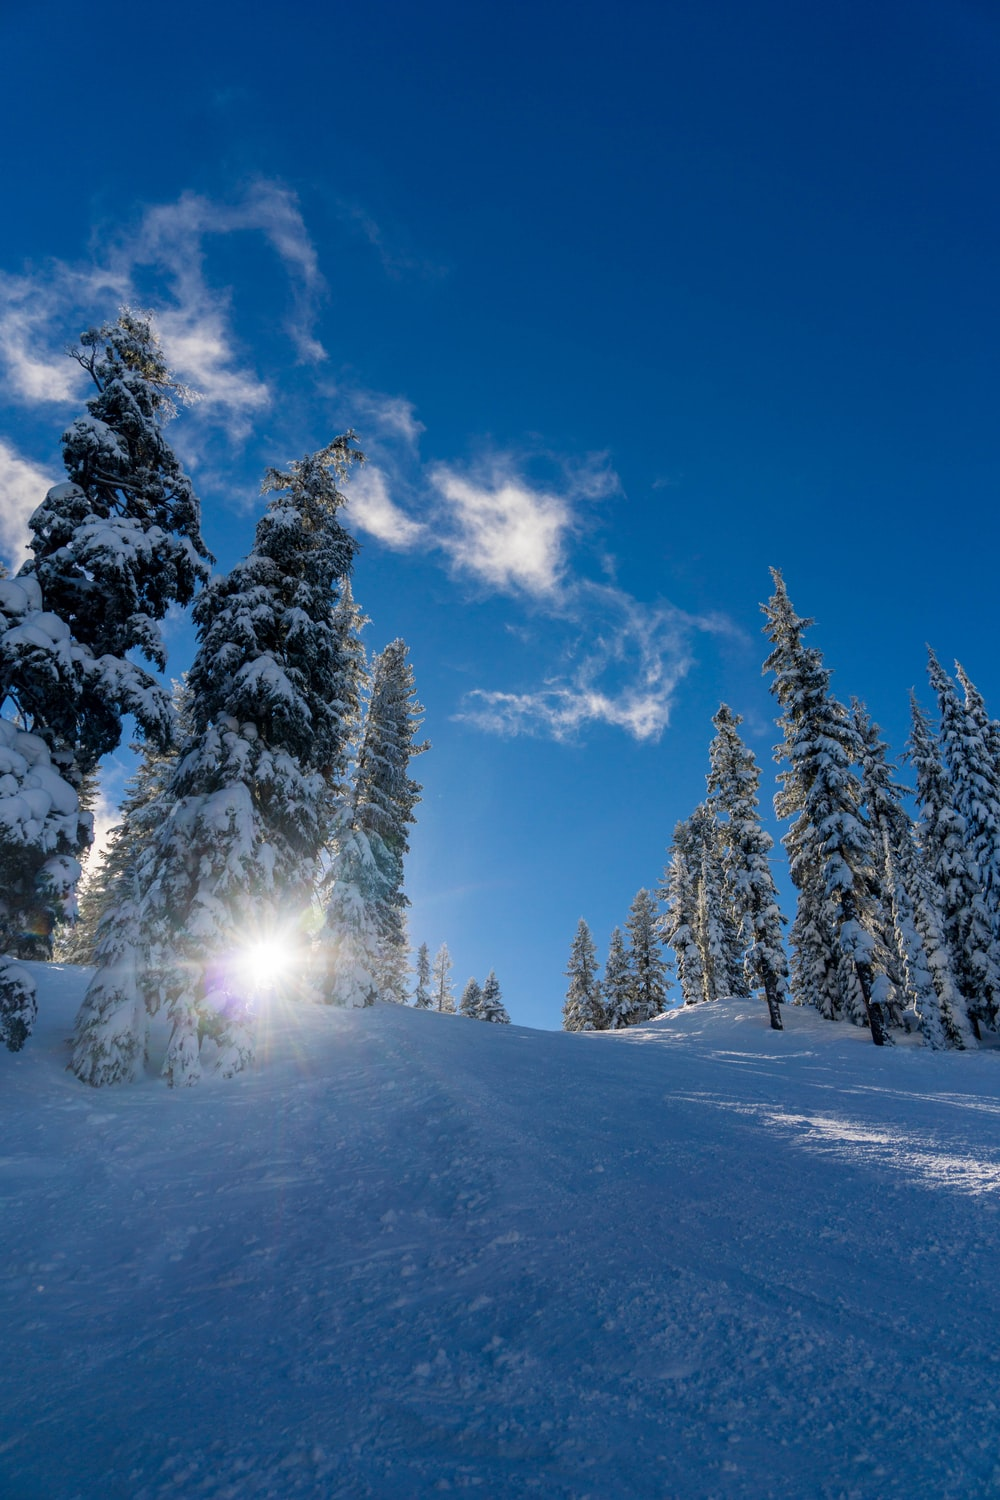 forest trees covered by snow